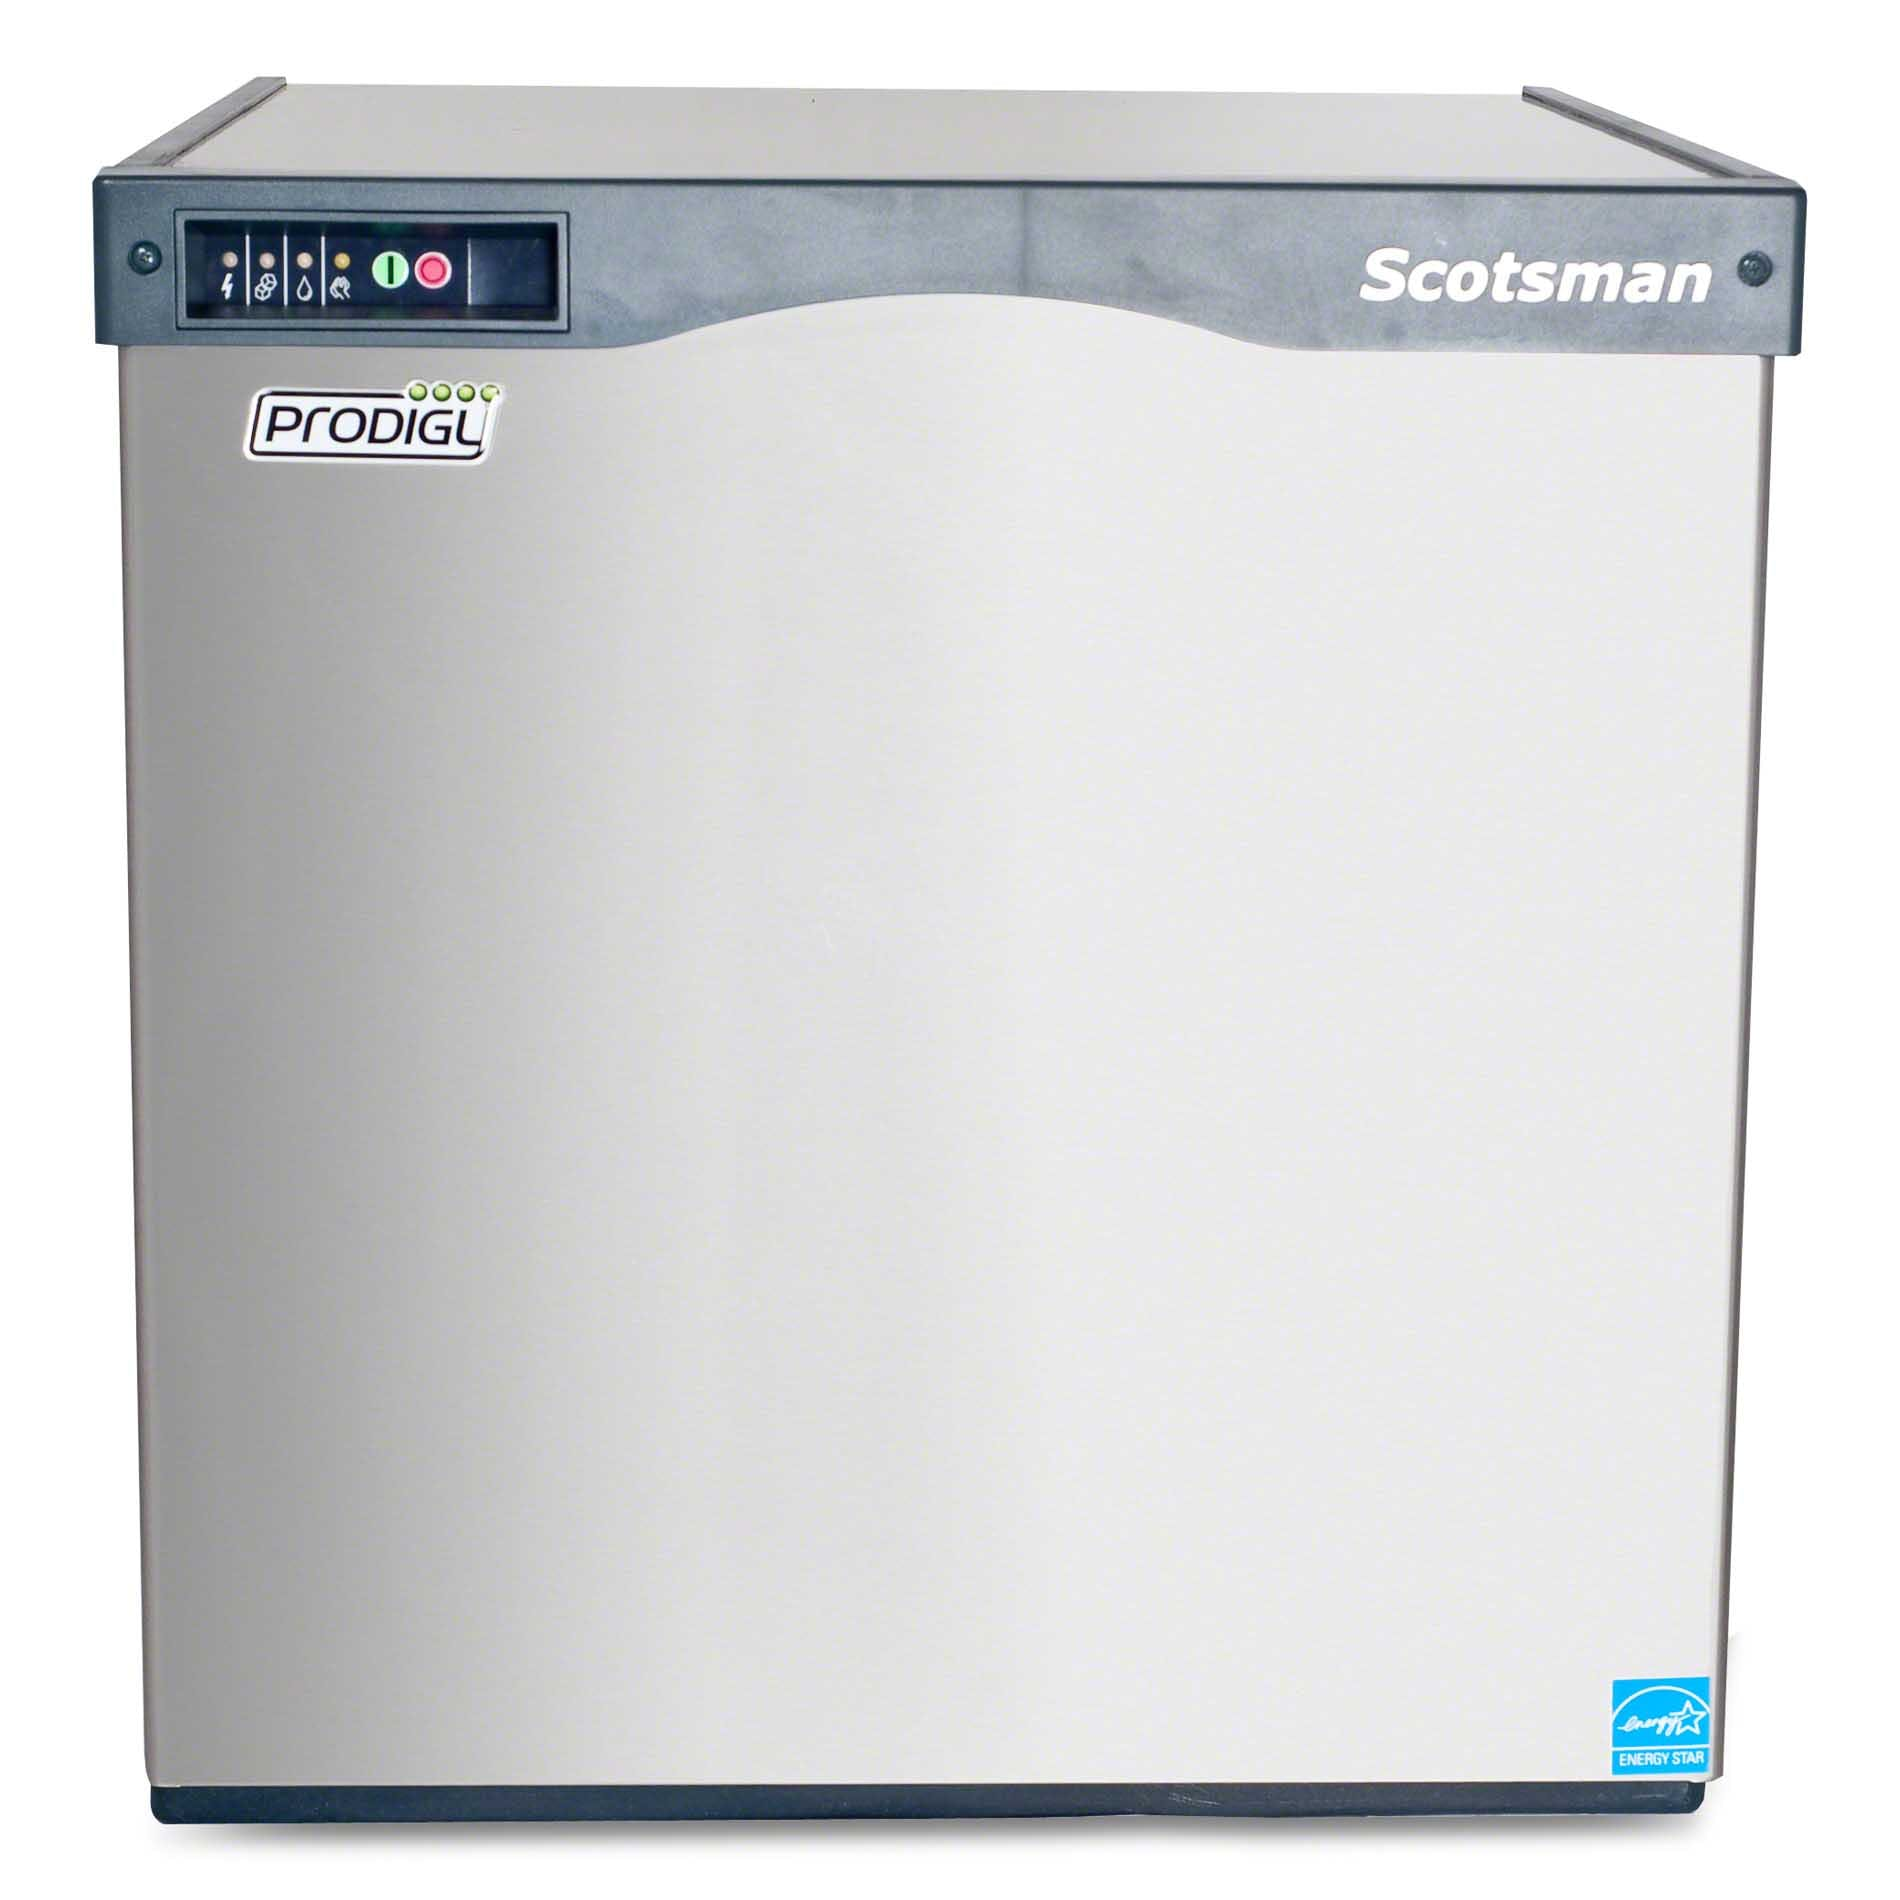 Scotsman - C0322MA-32A 356 lb Full Size Cube Ice Machine - Prodigy Series - sold by Food Service Warehouse